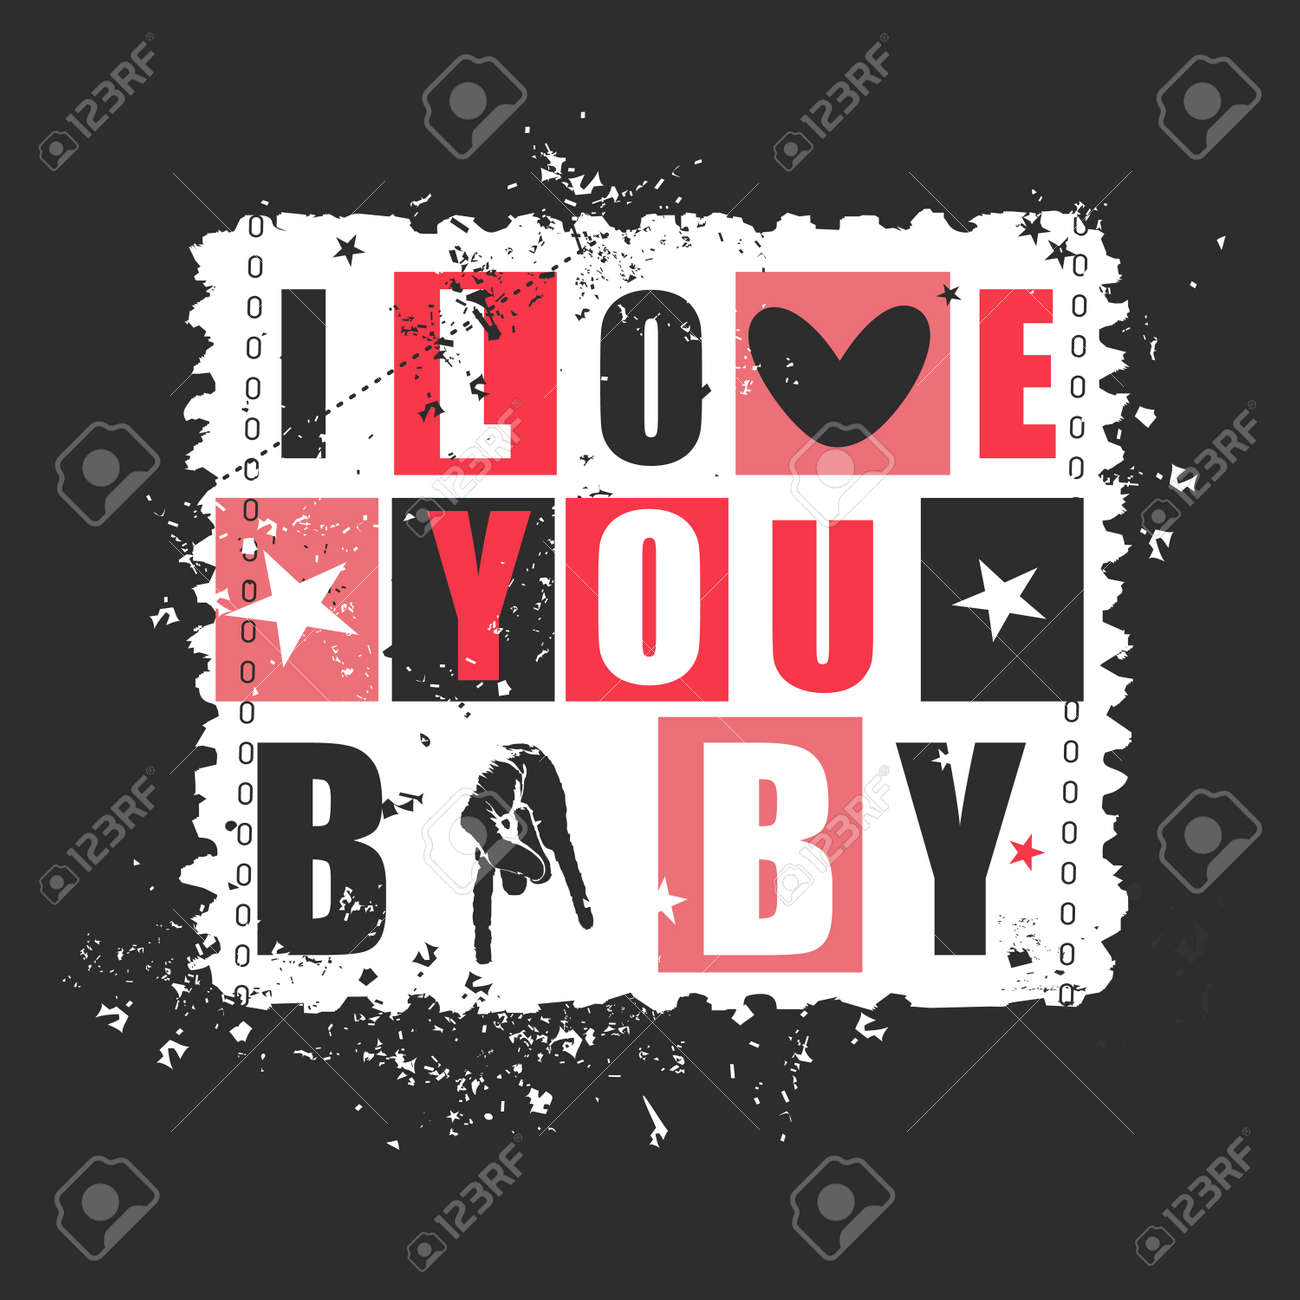 Valentine Day Gift Card With Text I Love You Baby On Retro